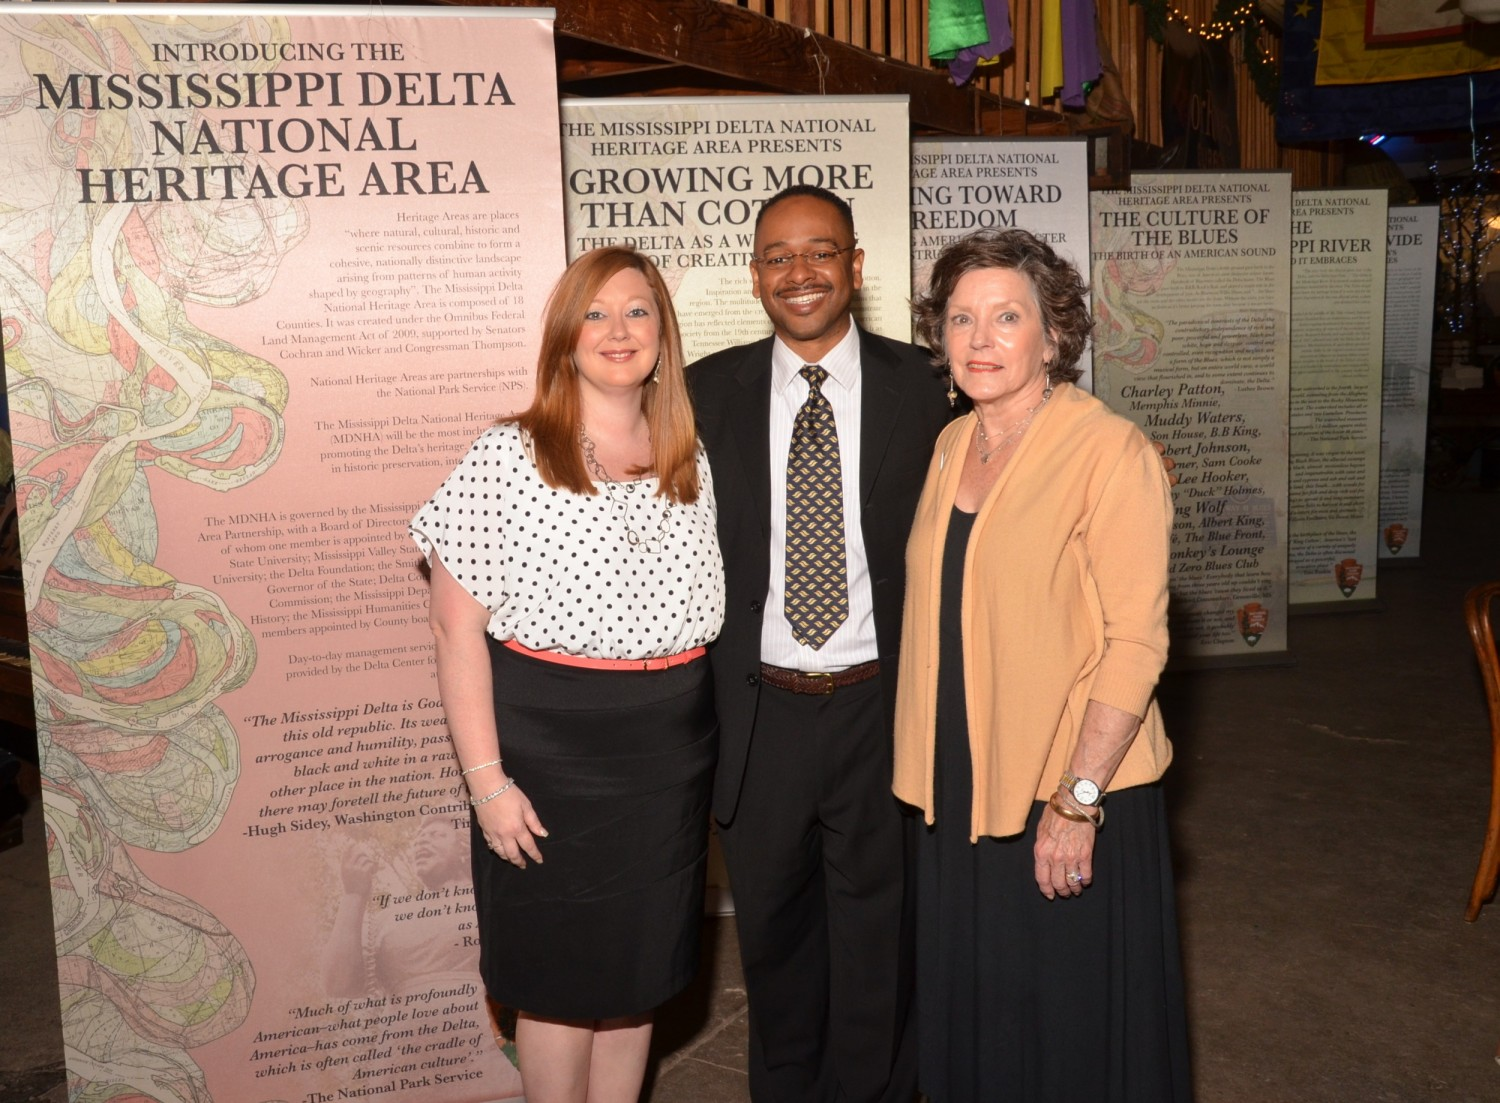 (Left to Right) Heather Miller, Program Associate for Projects, Dr. Rolando Herts, Director of The Delta Center for Culture and Learning, Lee Aylward, Program Associate for Education and Community Outreach